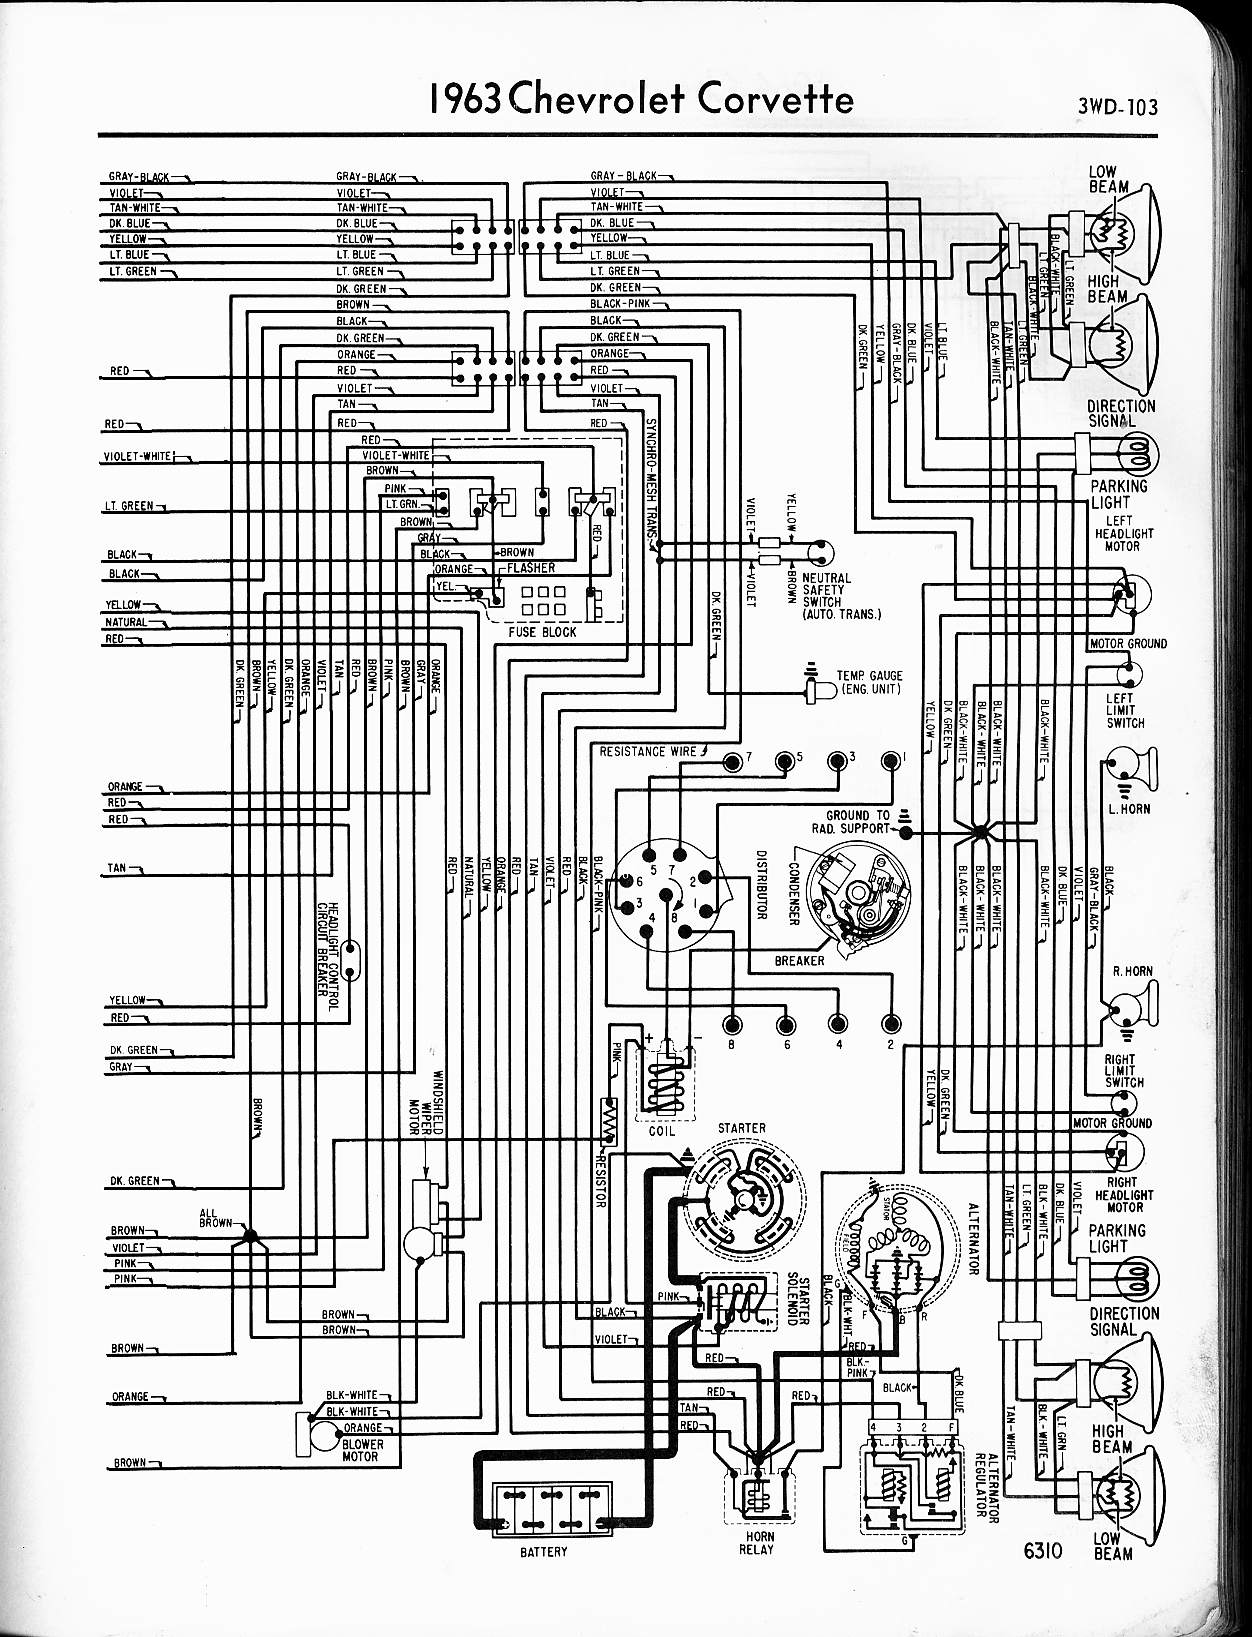 1963 c10 chevy truck wiring diagram online circuit wiring diagram u2022 rh electrobuddha co uk